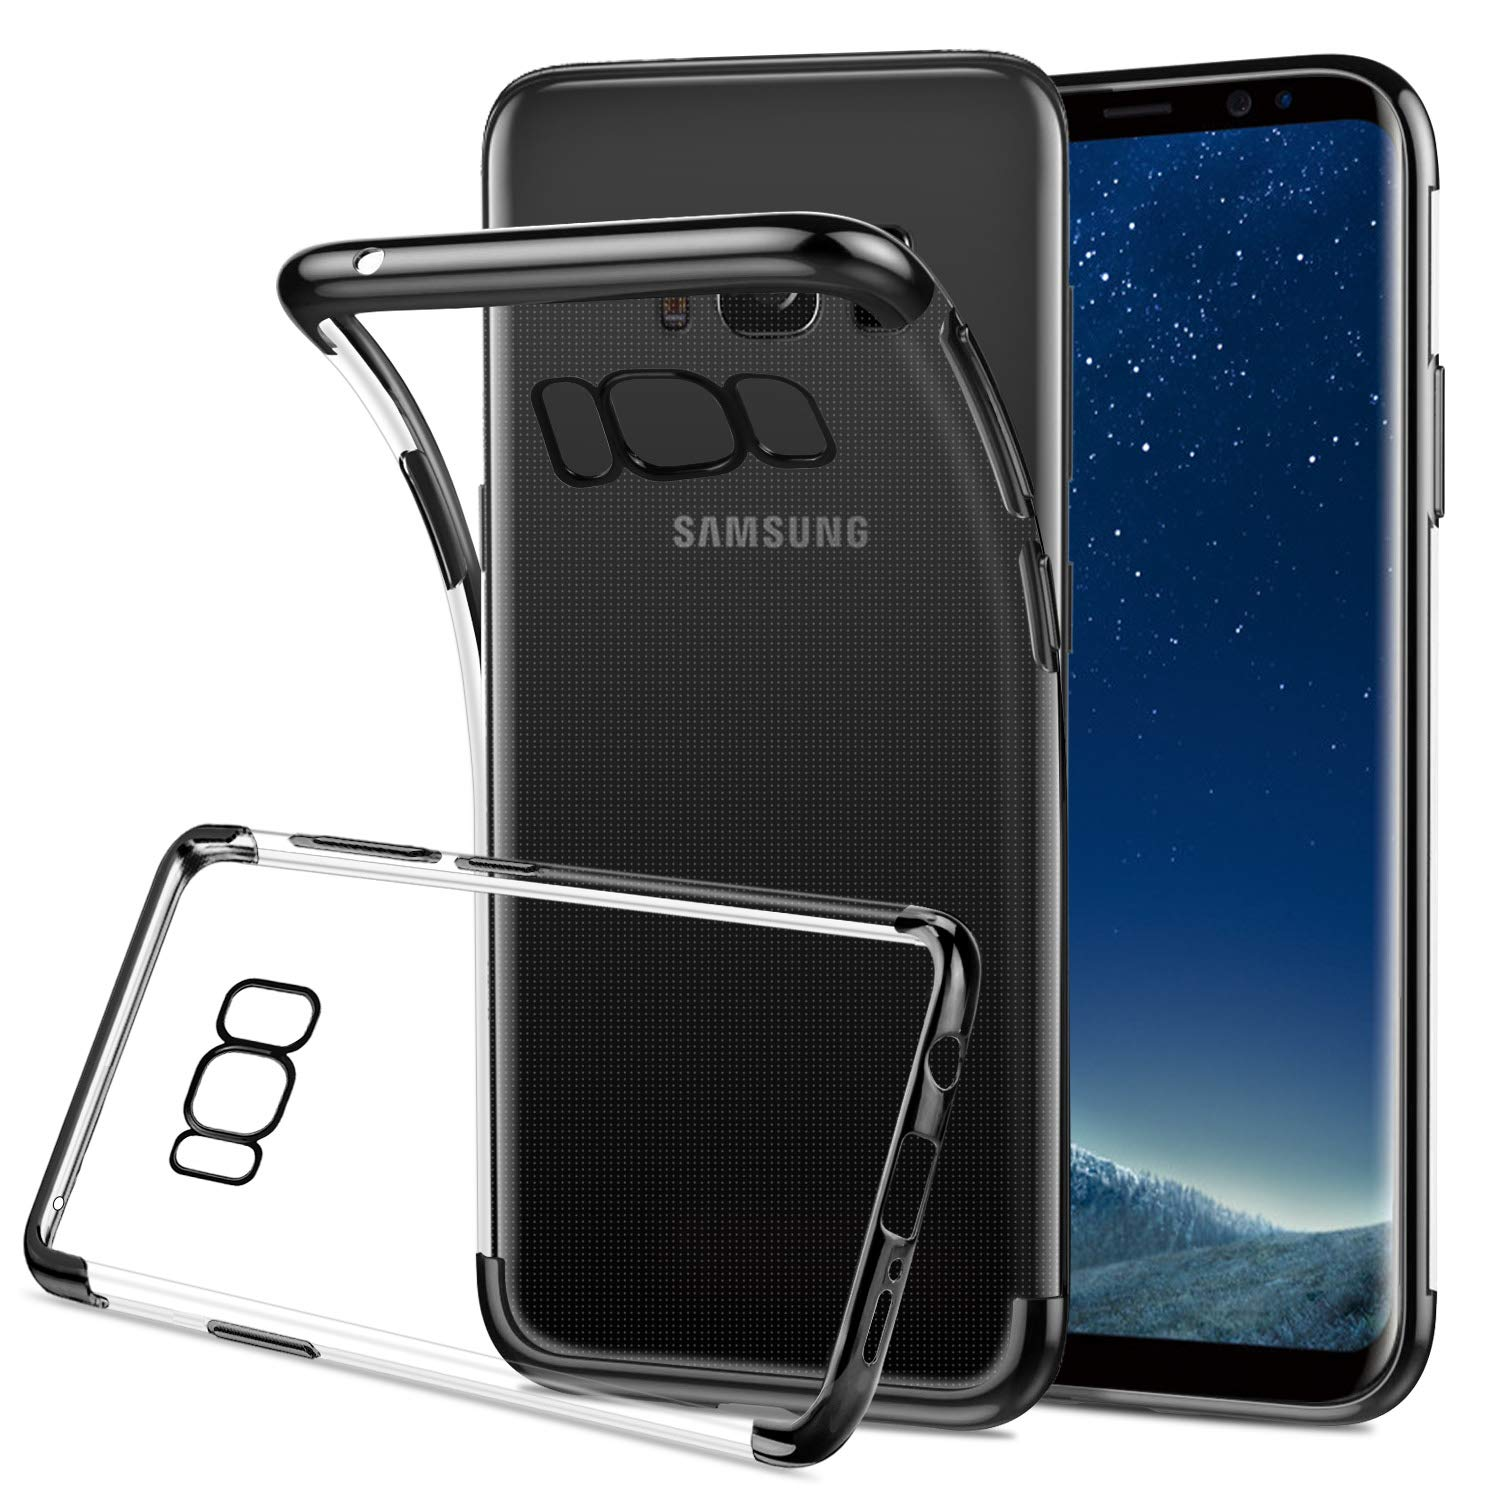 quality design 9a226 0263c HOOMIL Silicone Clear Case for Samsung Galaxy S8, [Black Bumper ...